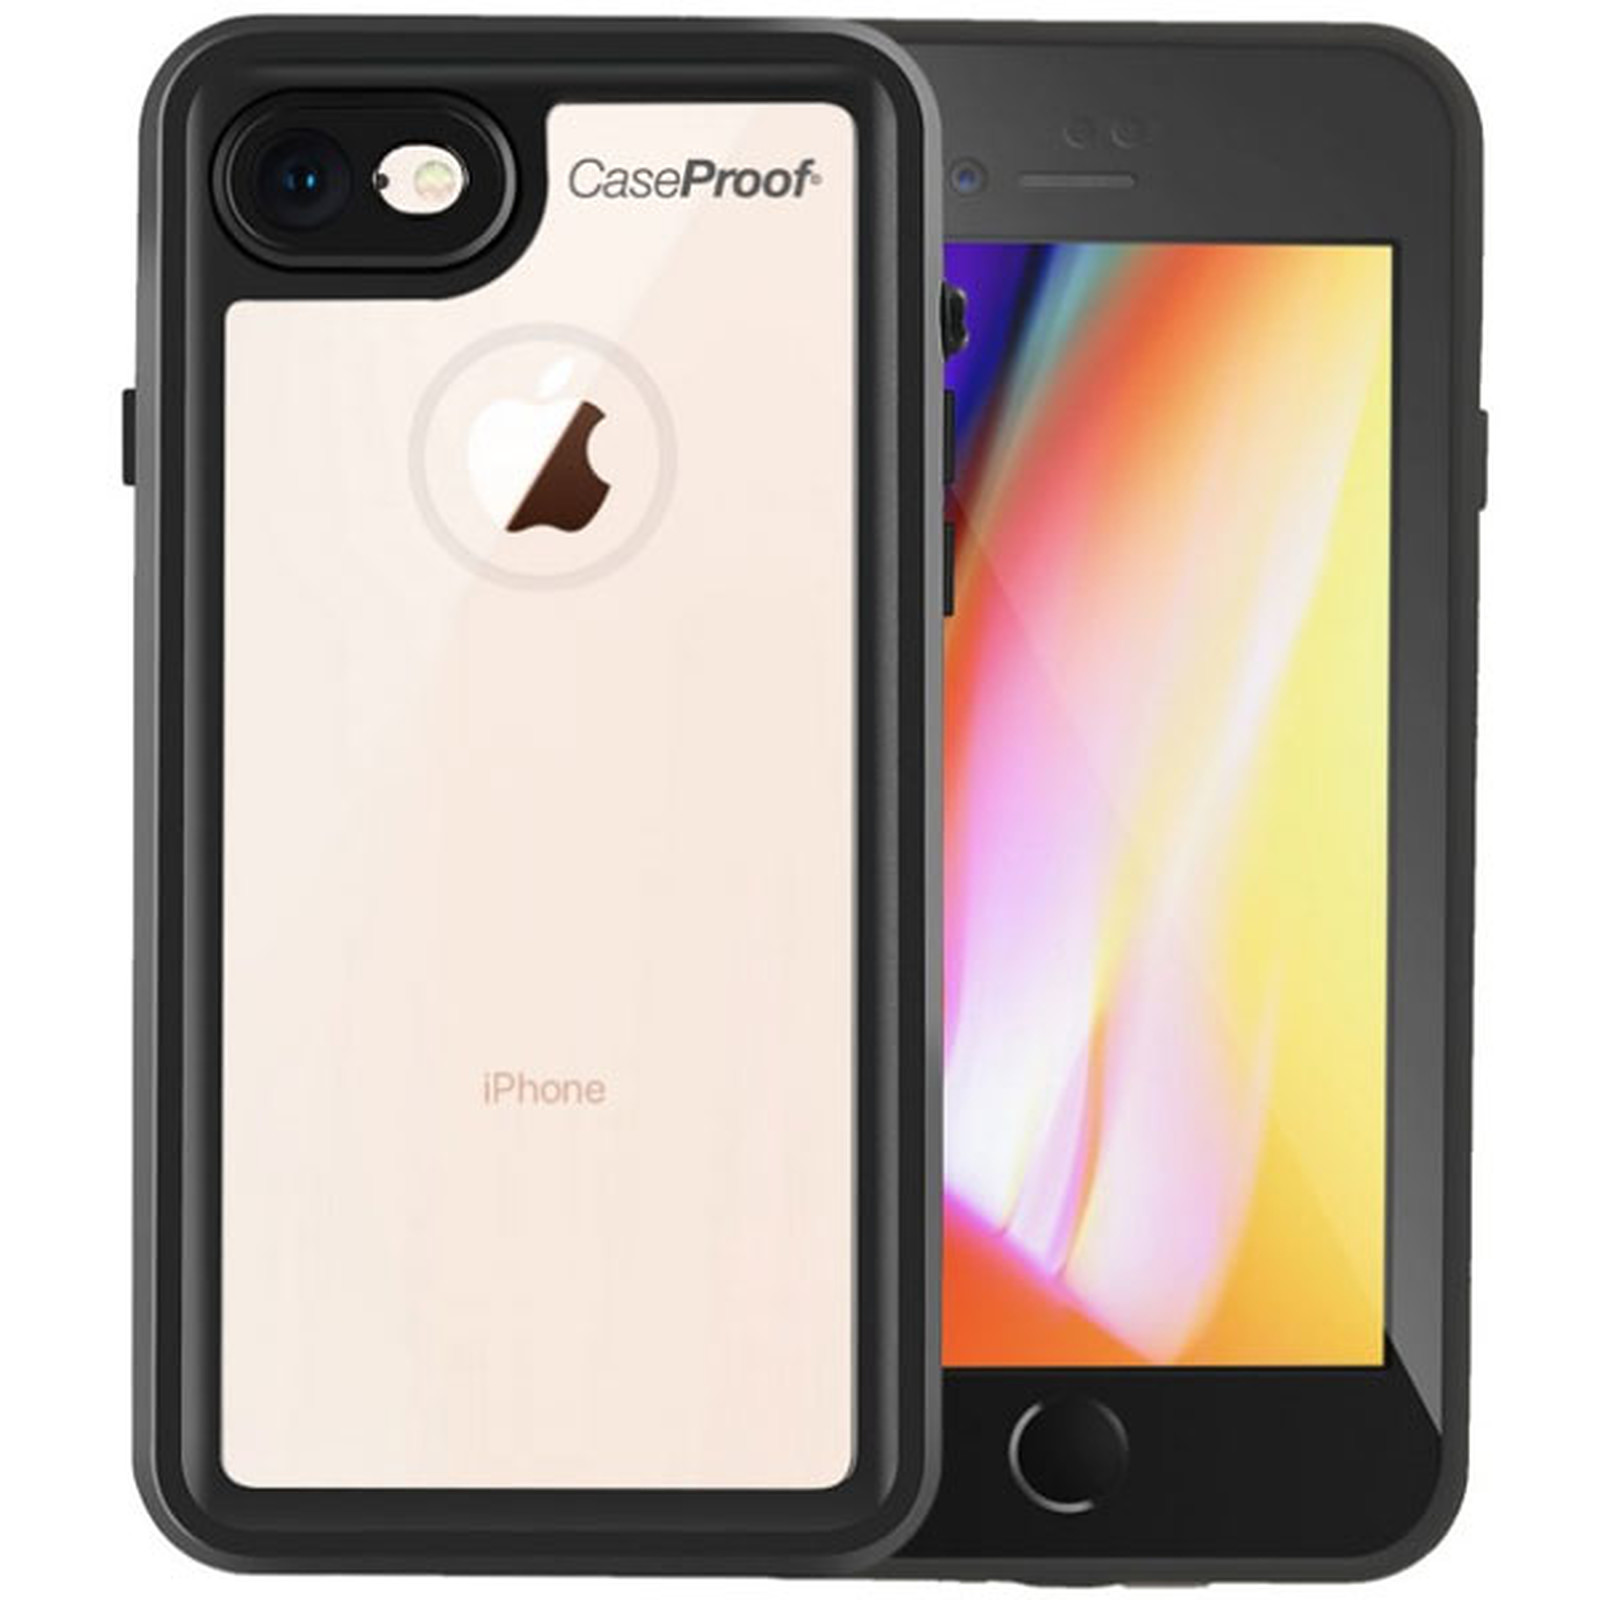 CaseProof Serial Case Waterproof Noir Apple iPhone 7/8